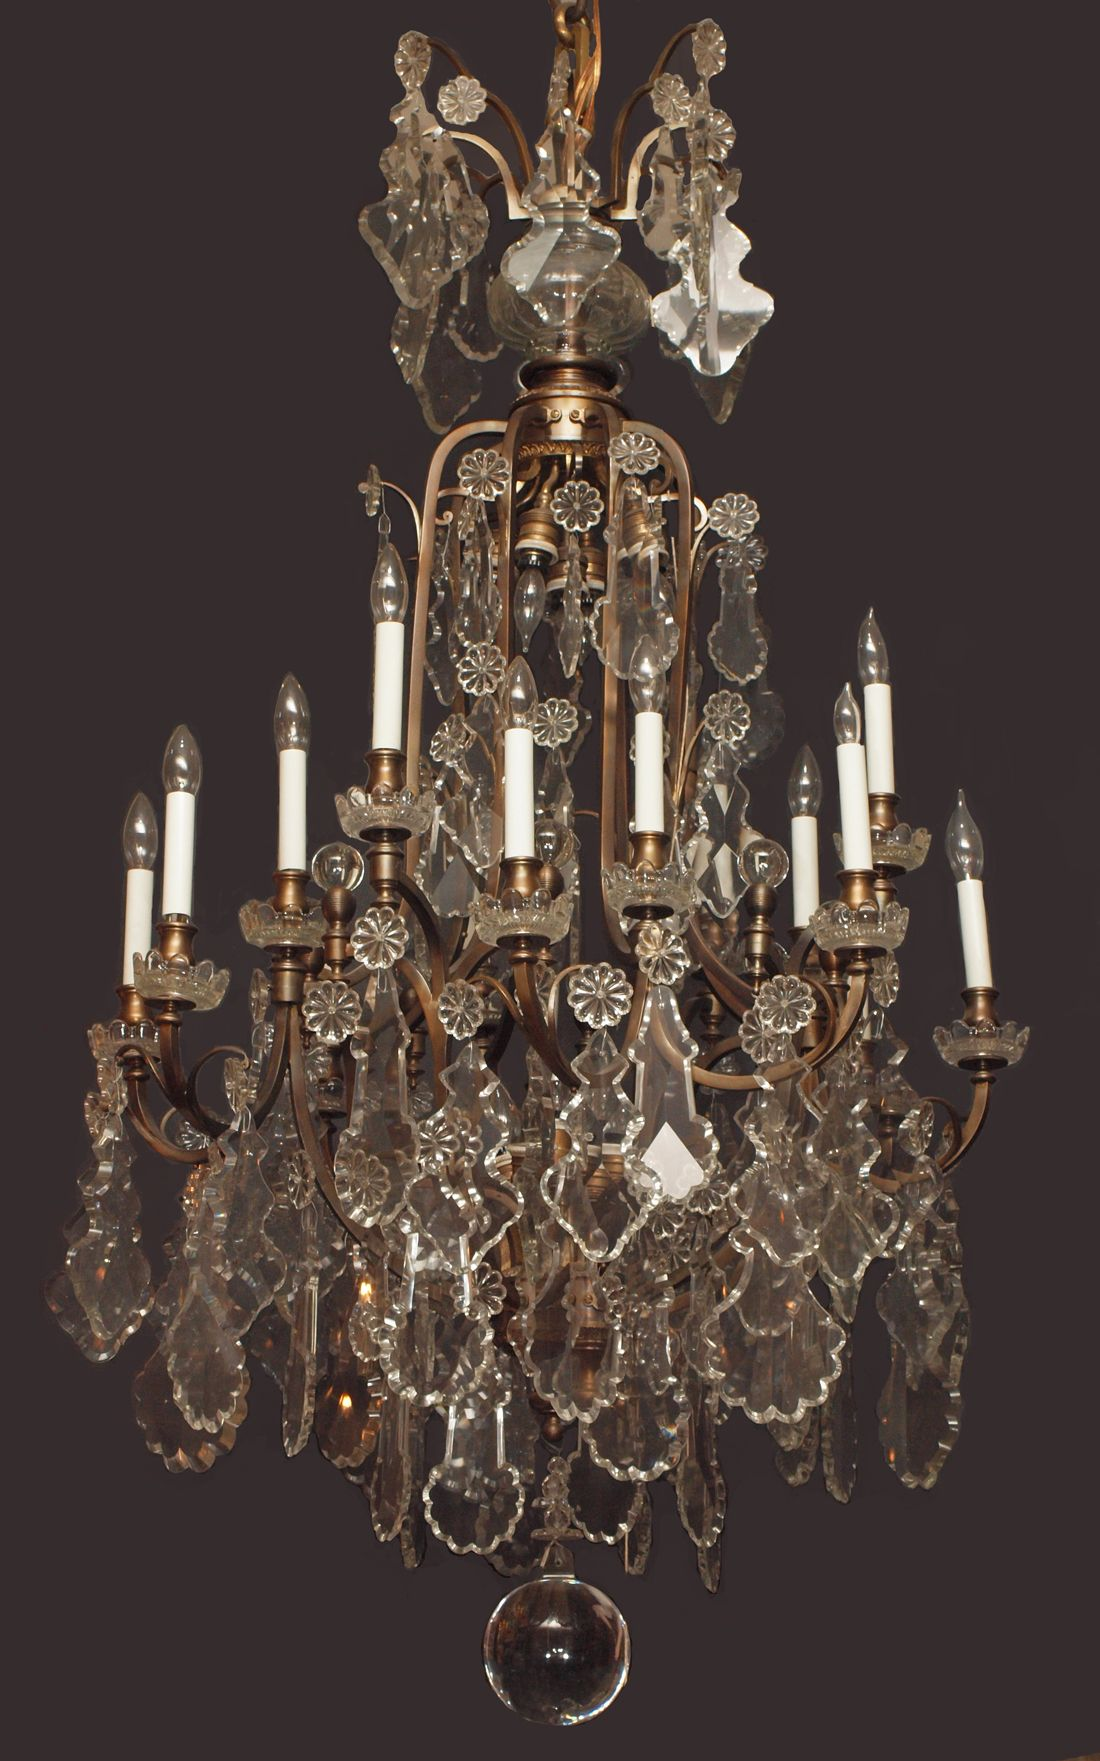 com chandelier and sale classifieds enlarge ori lighting antique lovely photo classified for lamps chandeliers antiques